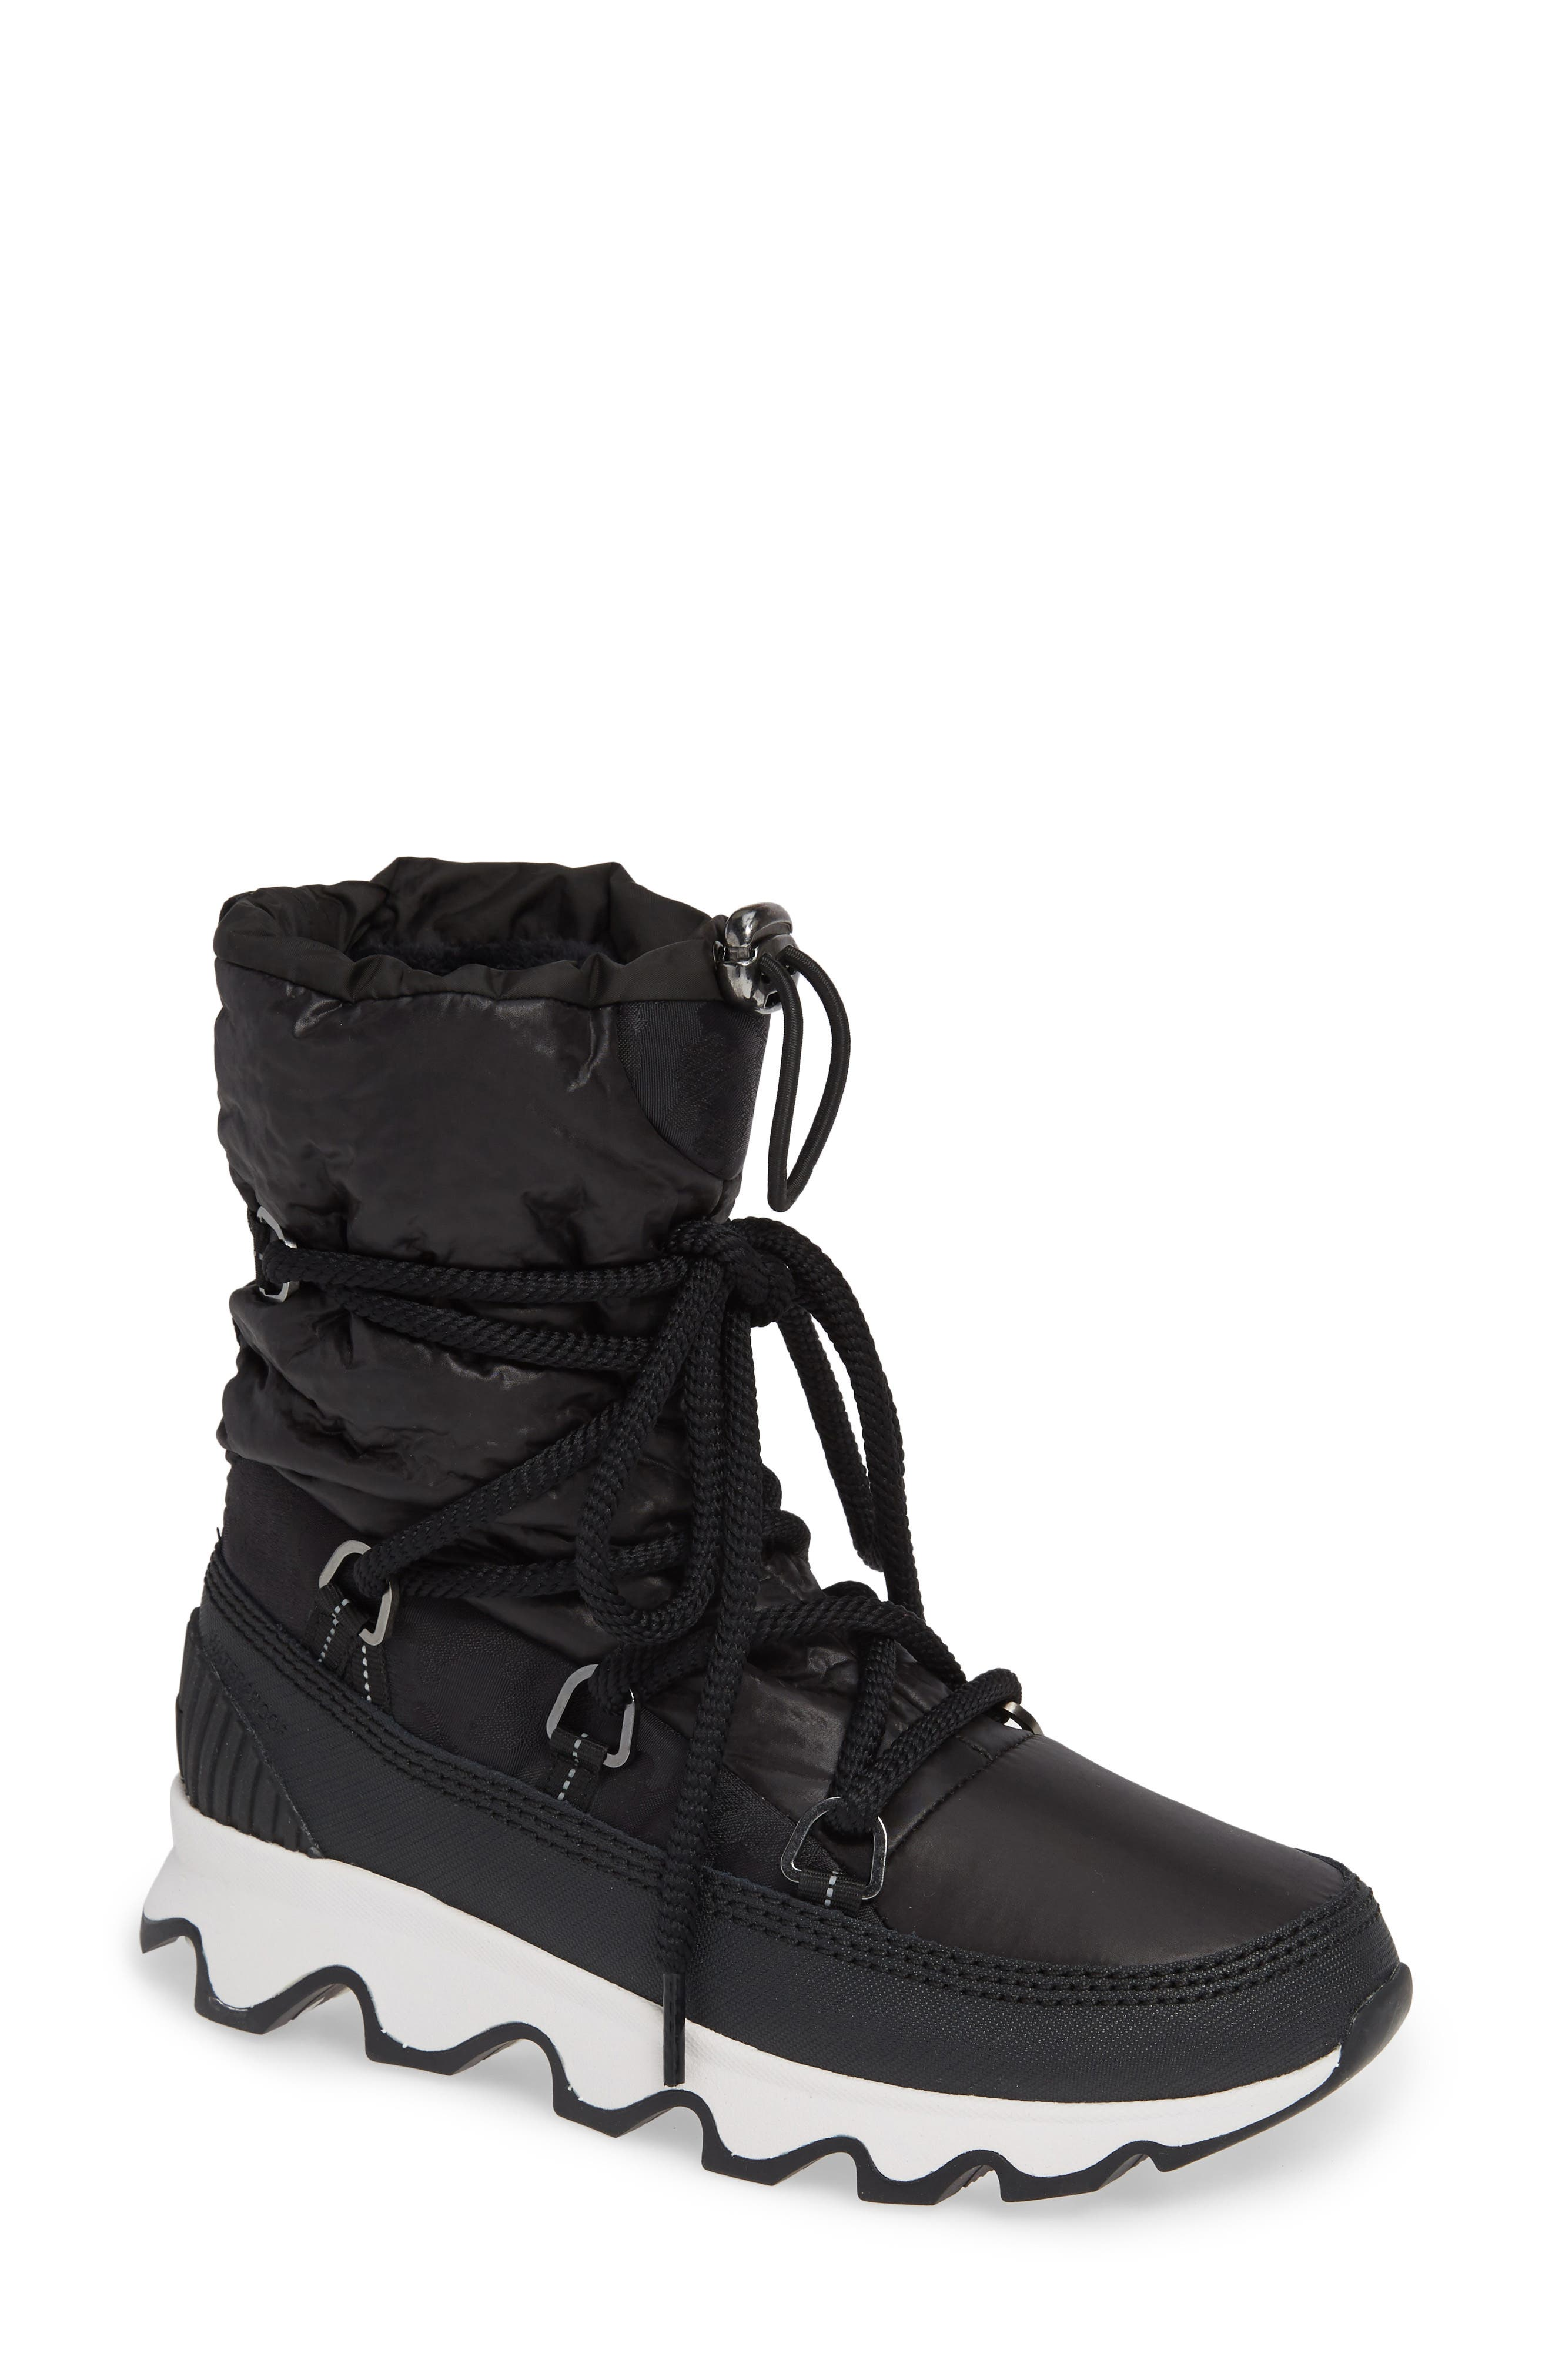 Kinetic Waterproof Insulated Winter Boot,                             Main thumbnail 1, color,                             CAMO/ BLACK/ WHITE